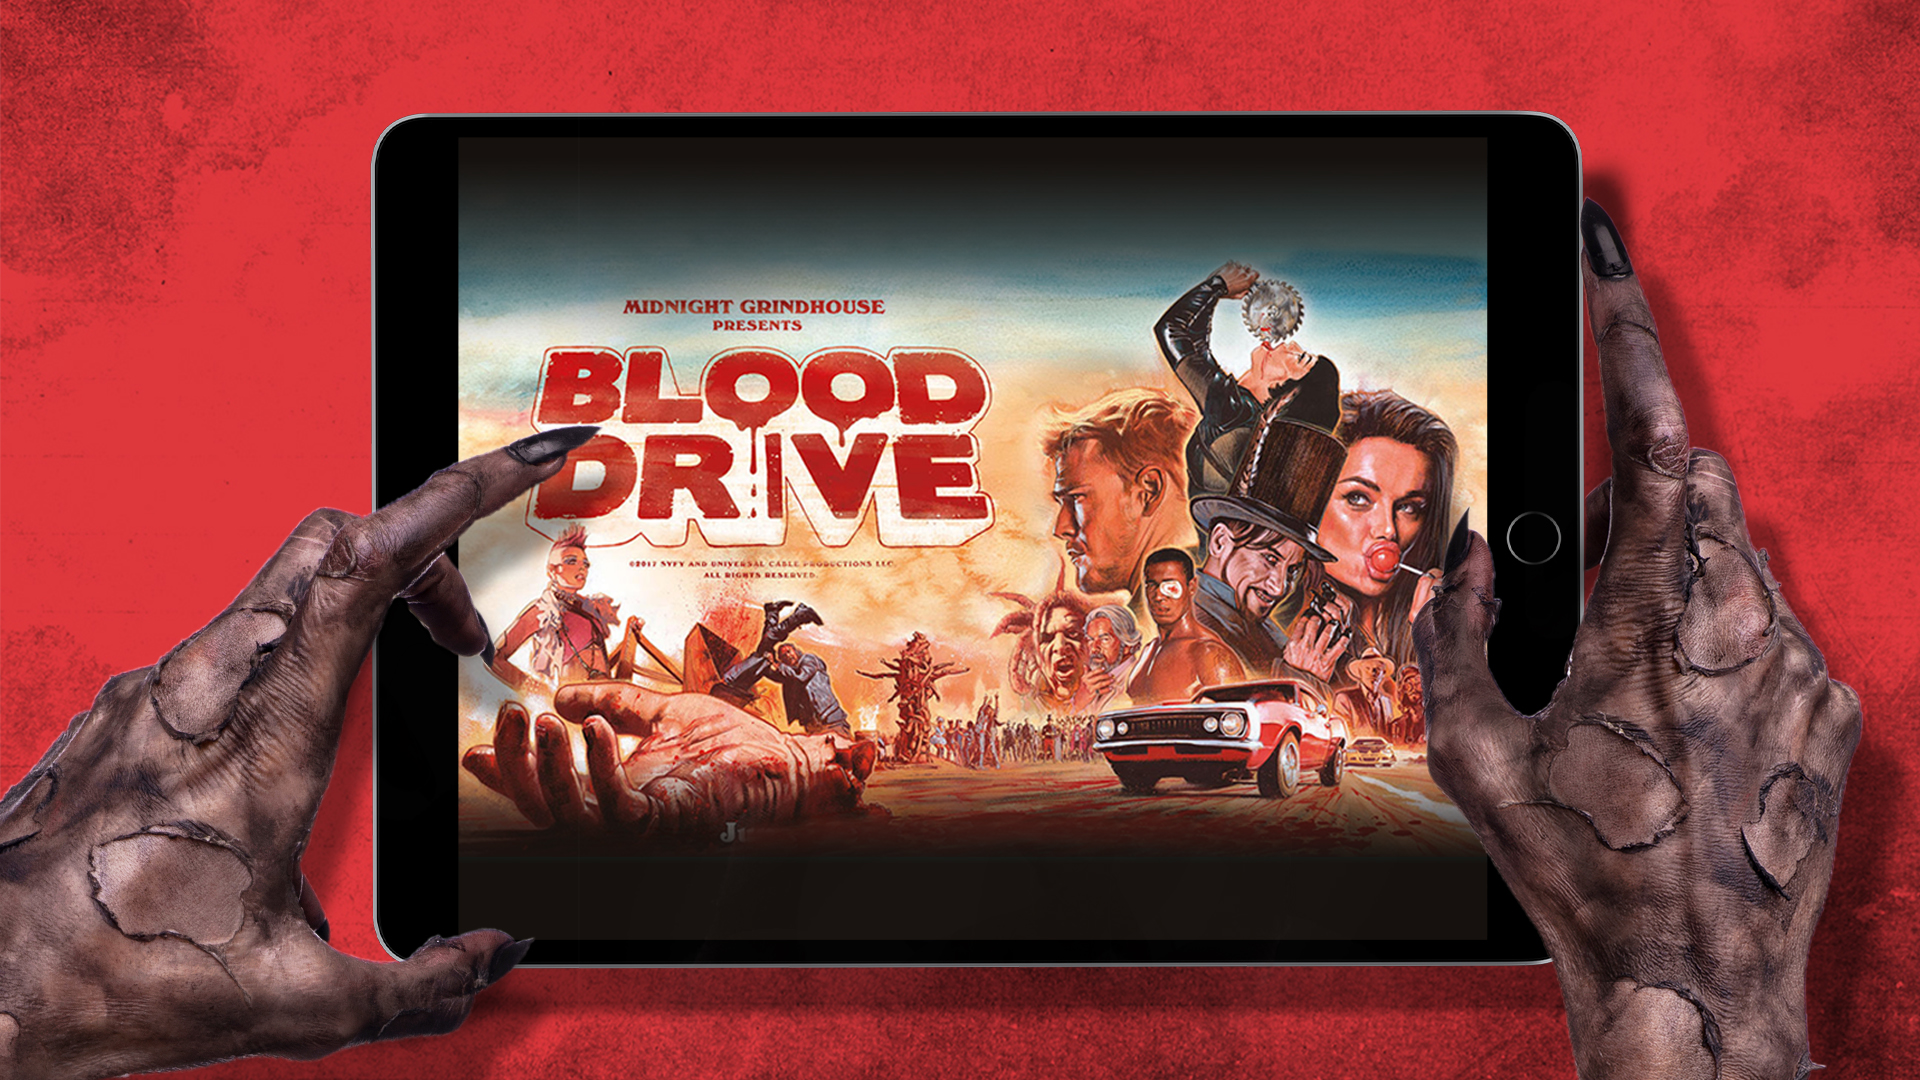 Iphone_BloodDrive_Ipad.jpg